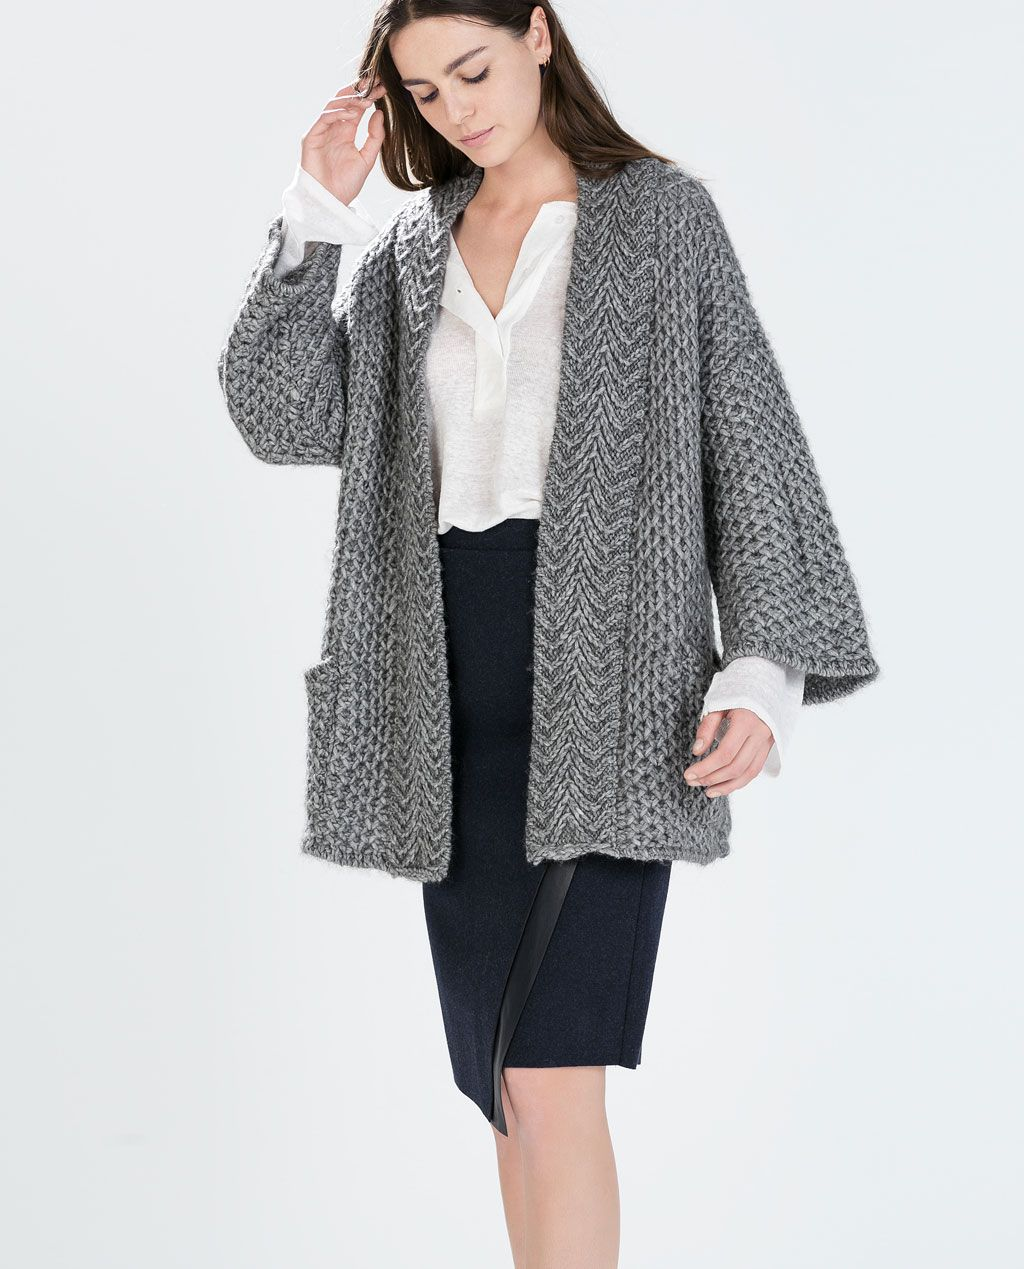 KNIT CARDIGAN WITH POCKETS from Zara 100 | Materials | Pinterest ...